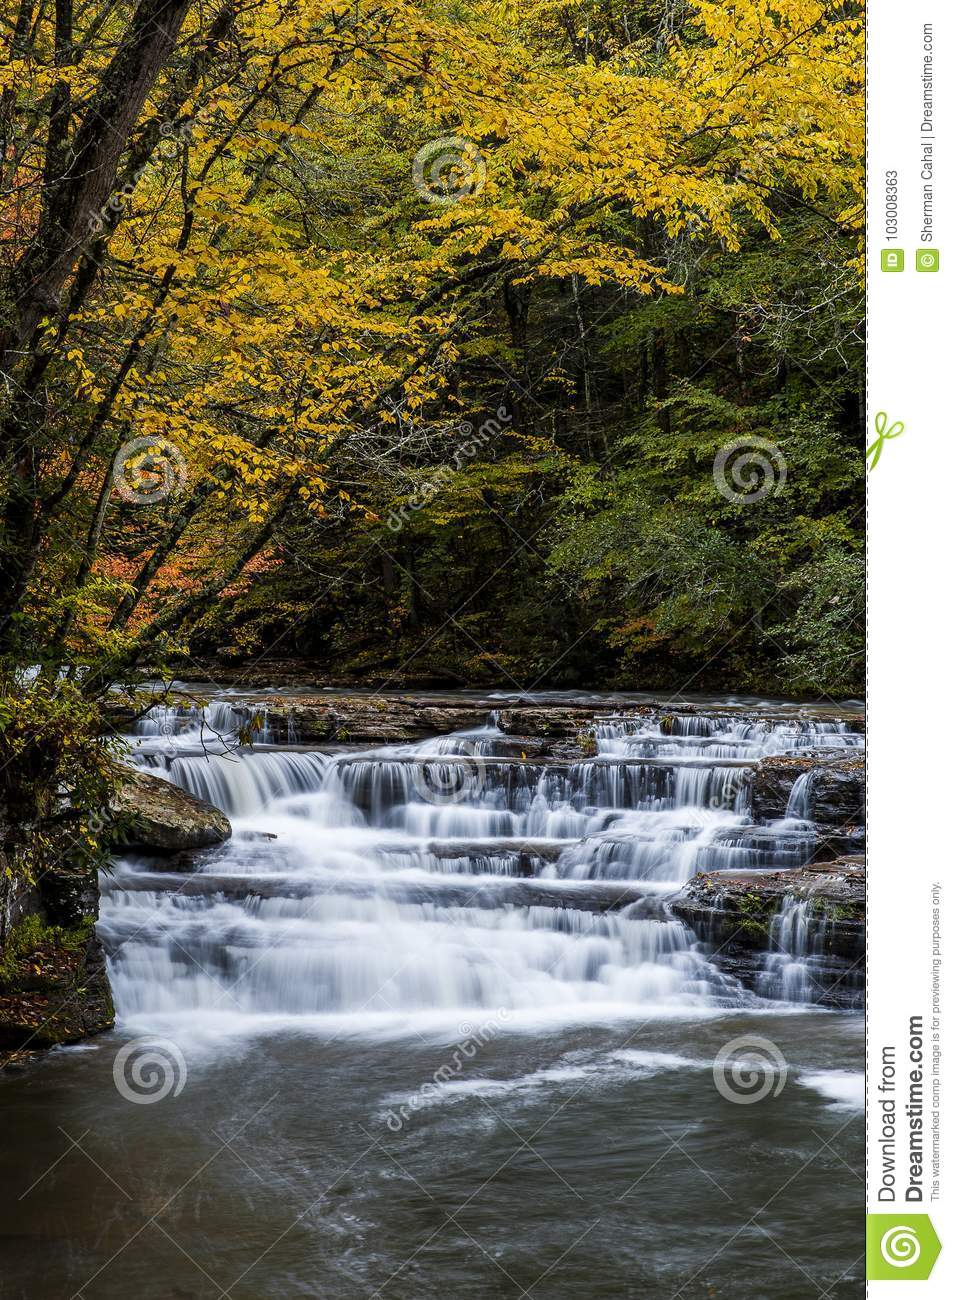 Cascada en otoño - Campbell Falls, parque de estado de la cala del campo, Virginia Occidental